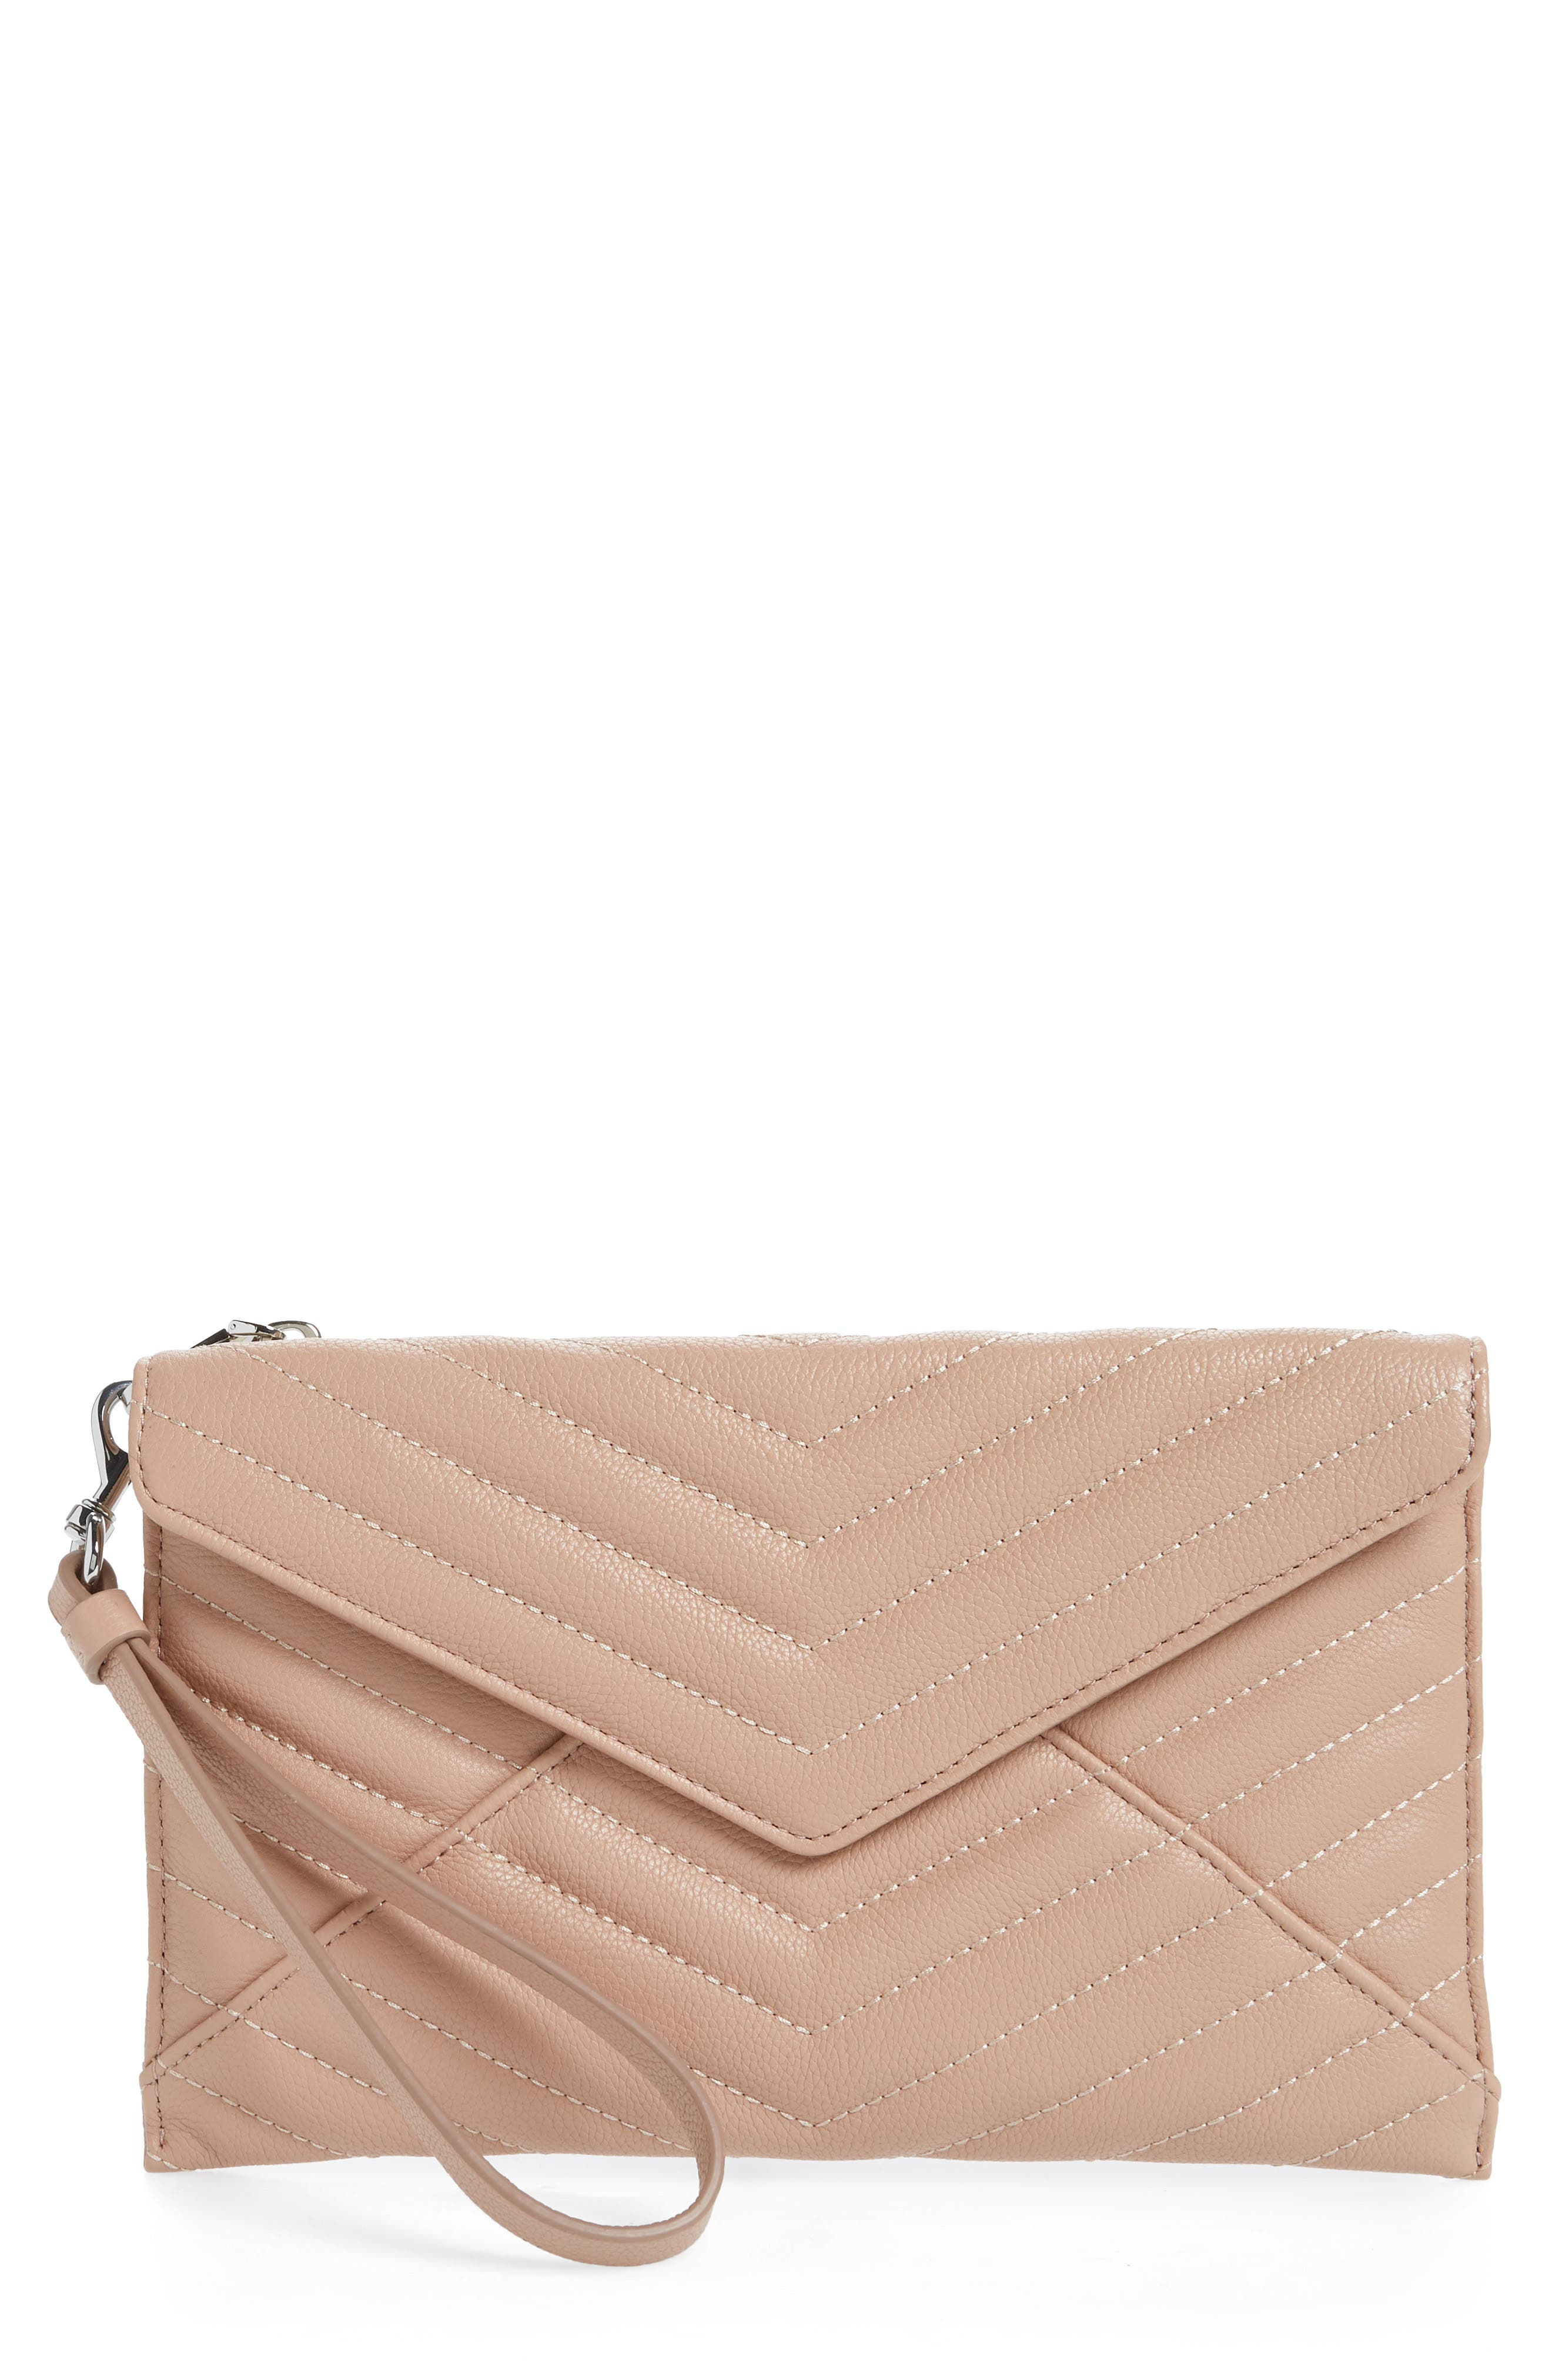 REBECCA MINKOFF Leo Quilted Leather Clutch, Main, color, DOE